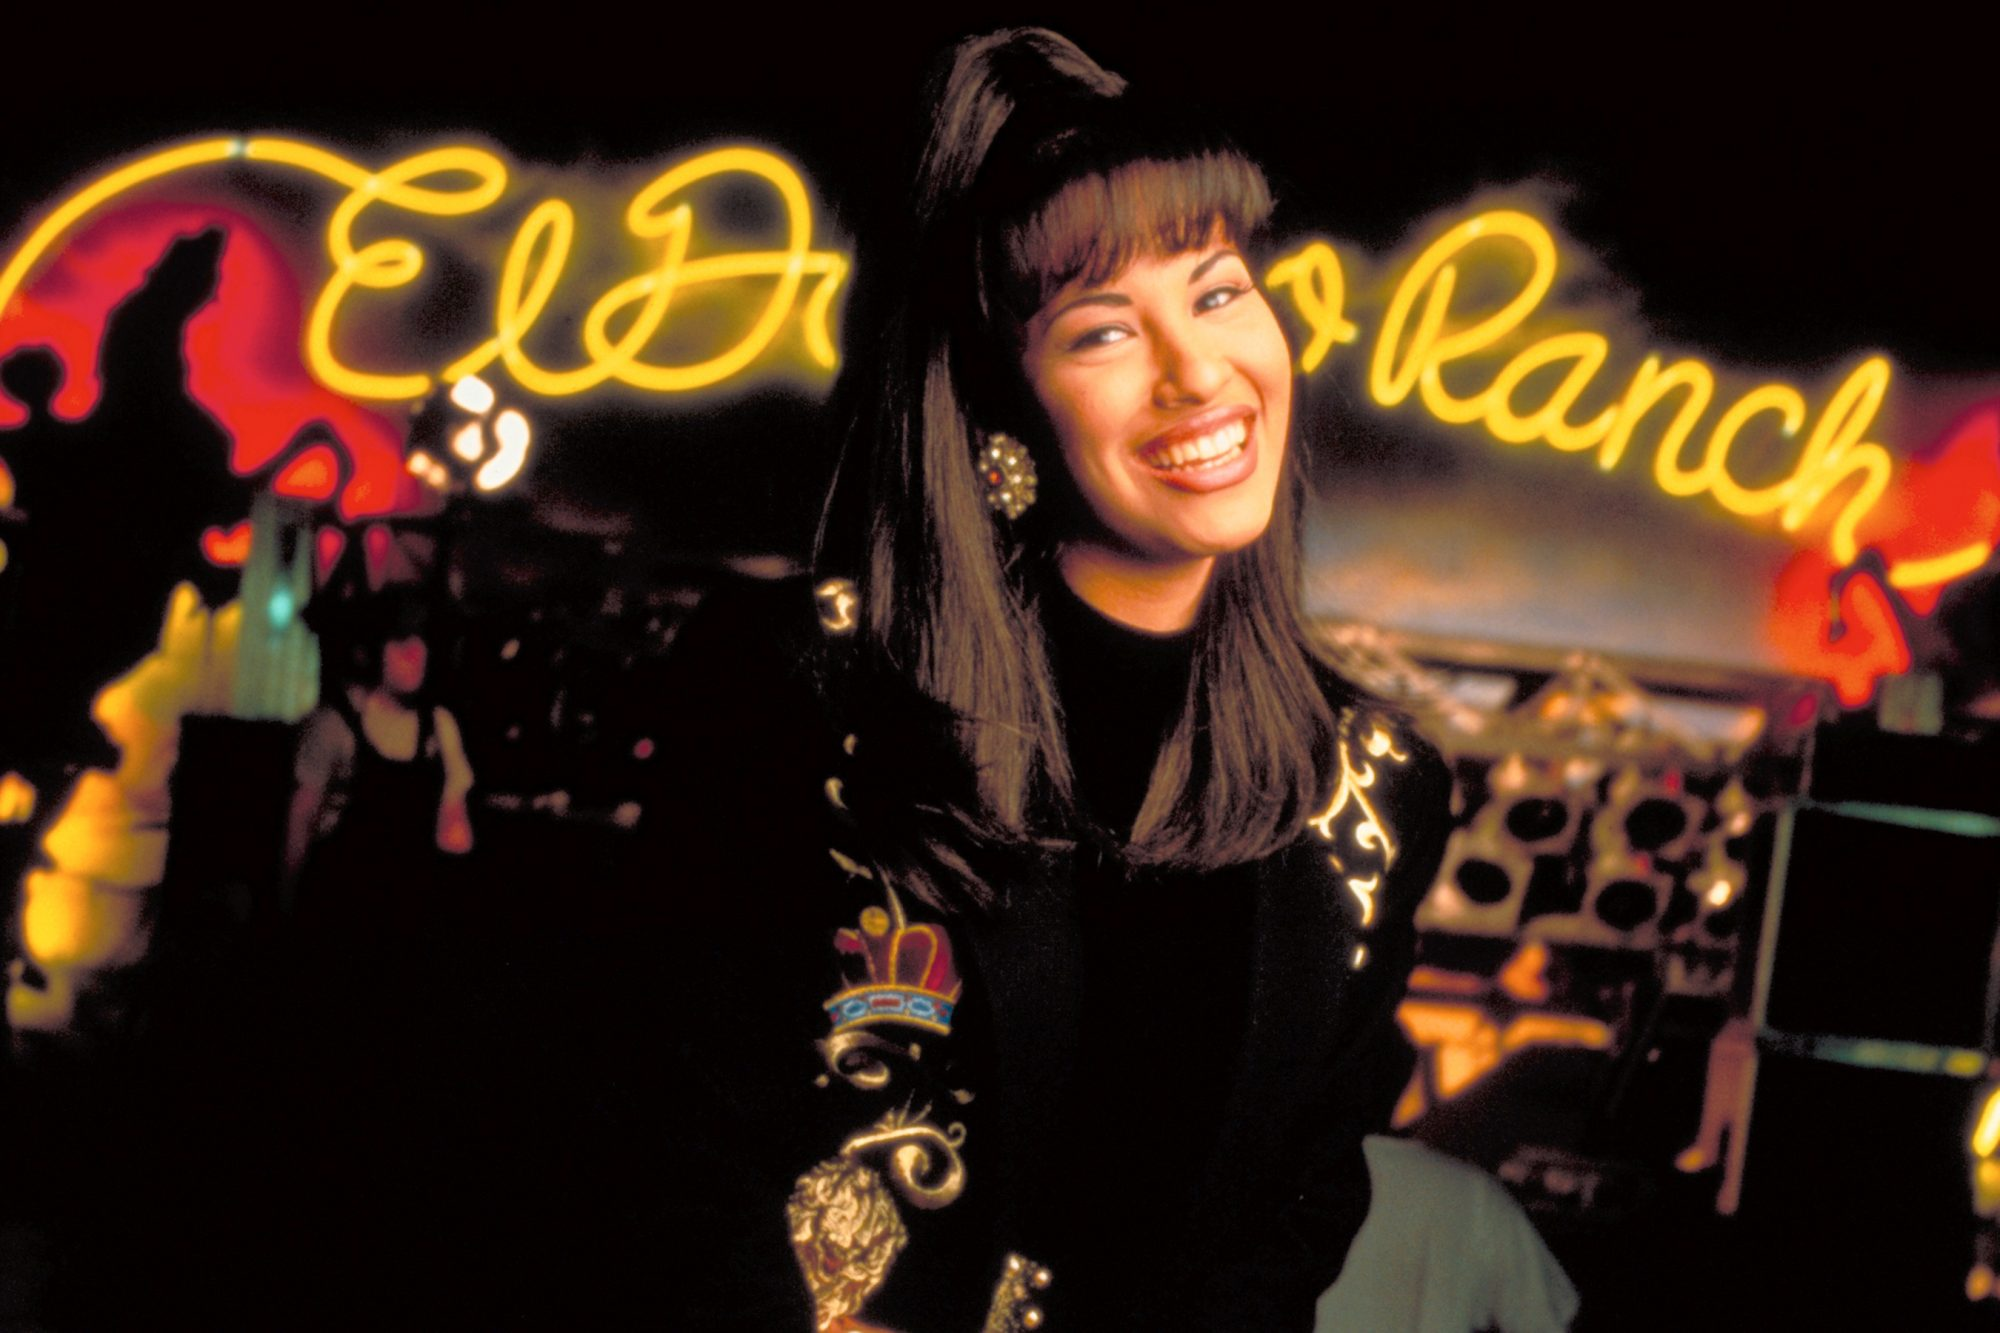 Rare Video Of Selena Quintanilla Singing Bidi Bidi Bom Bom In English Has Surfaced Ew Com